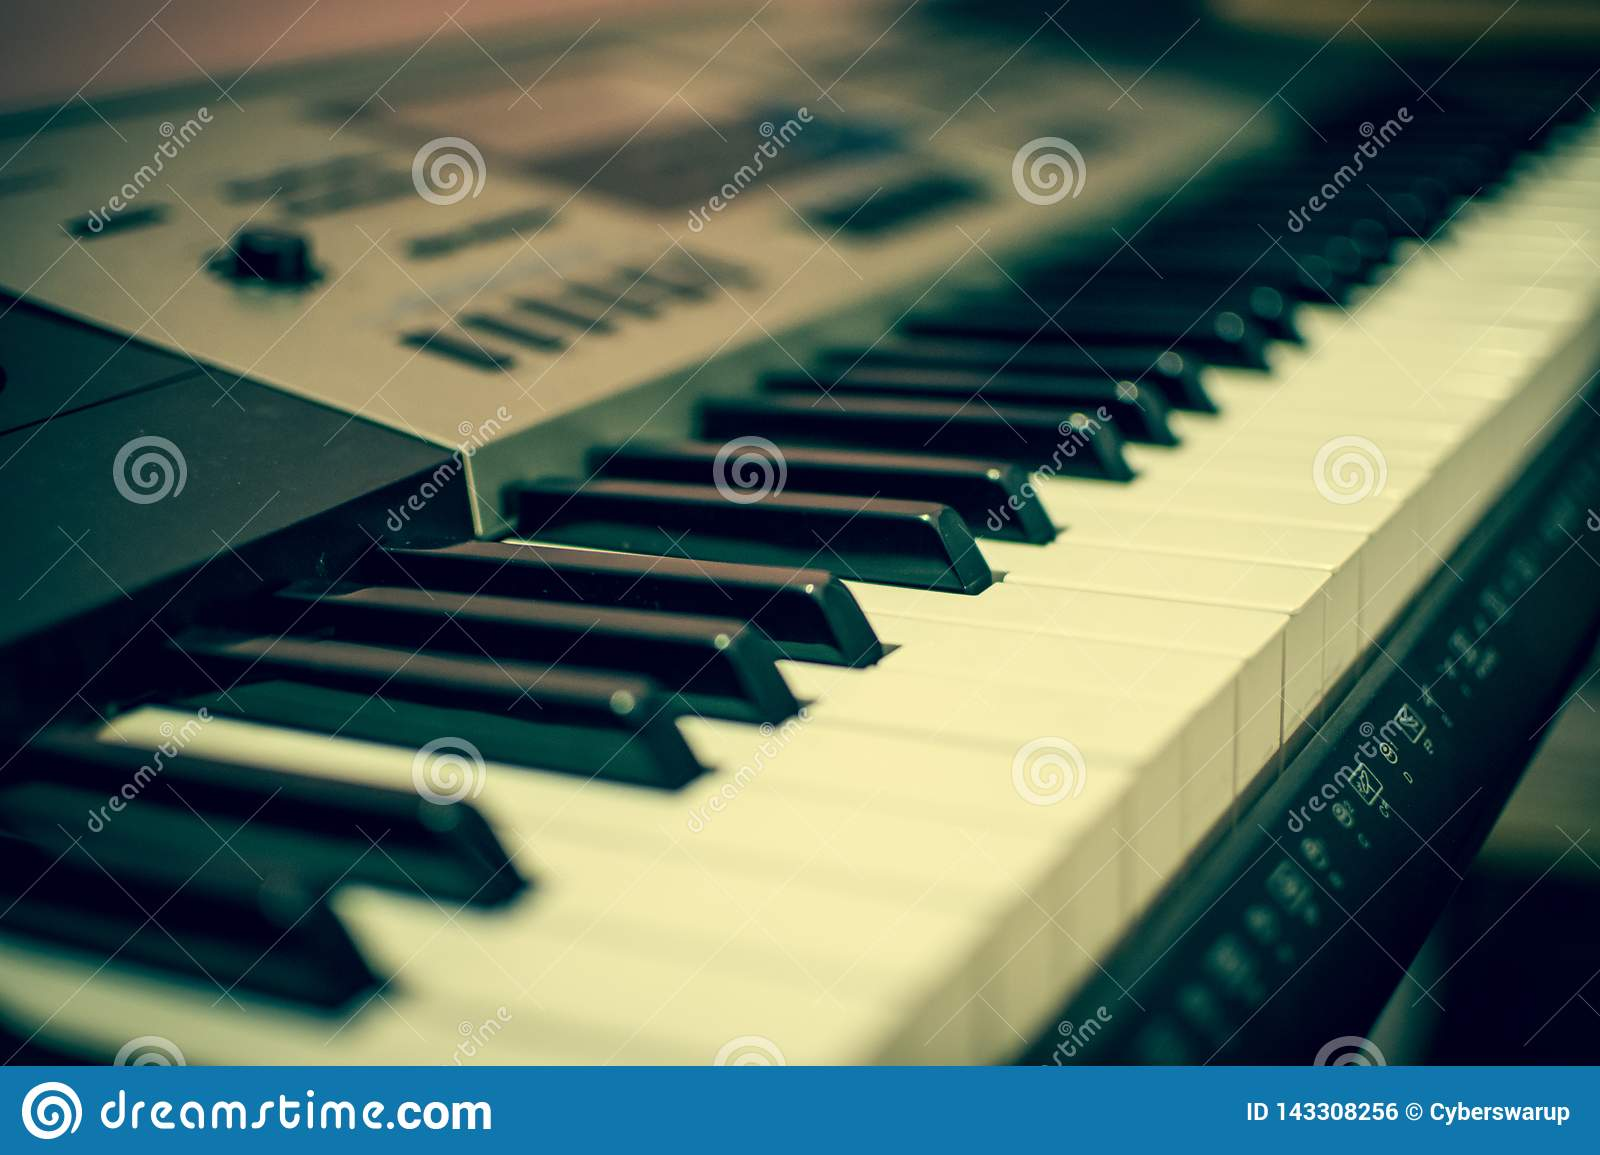 View of a keyboard - the music creator